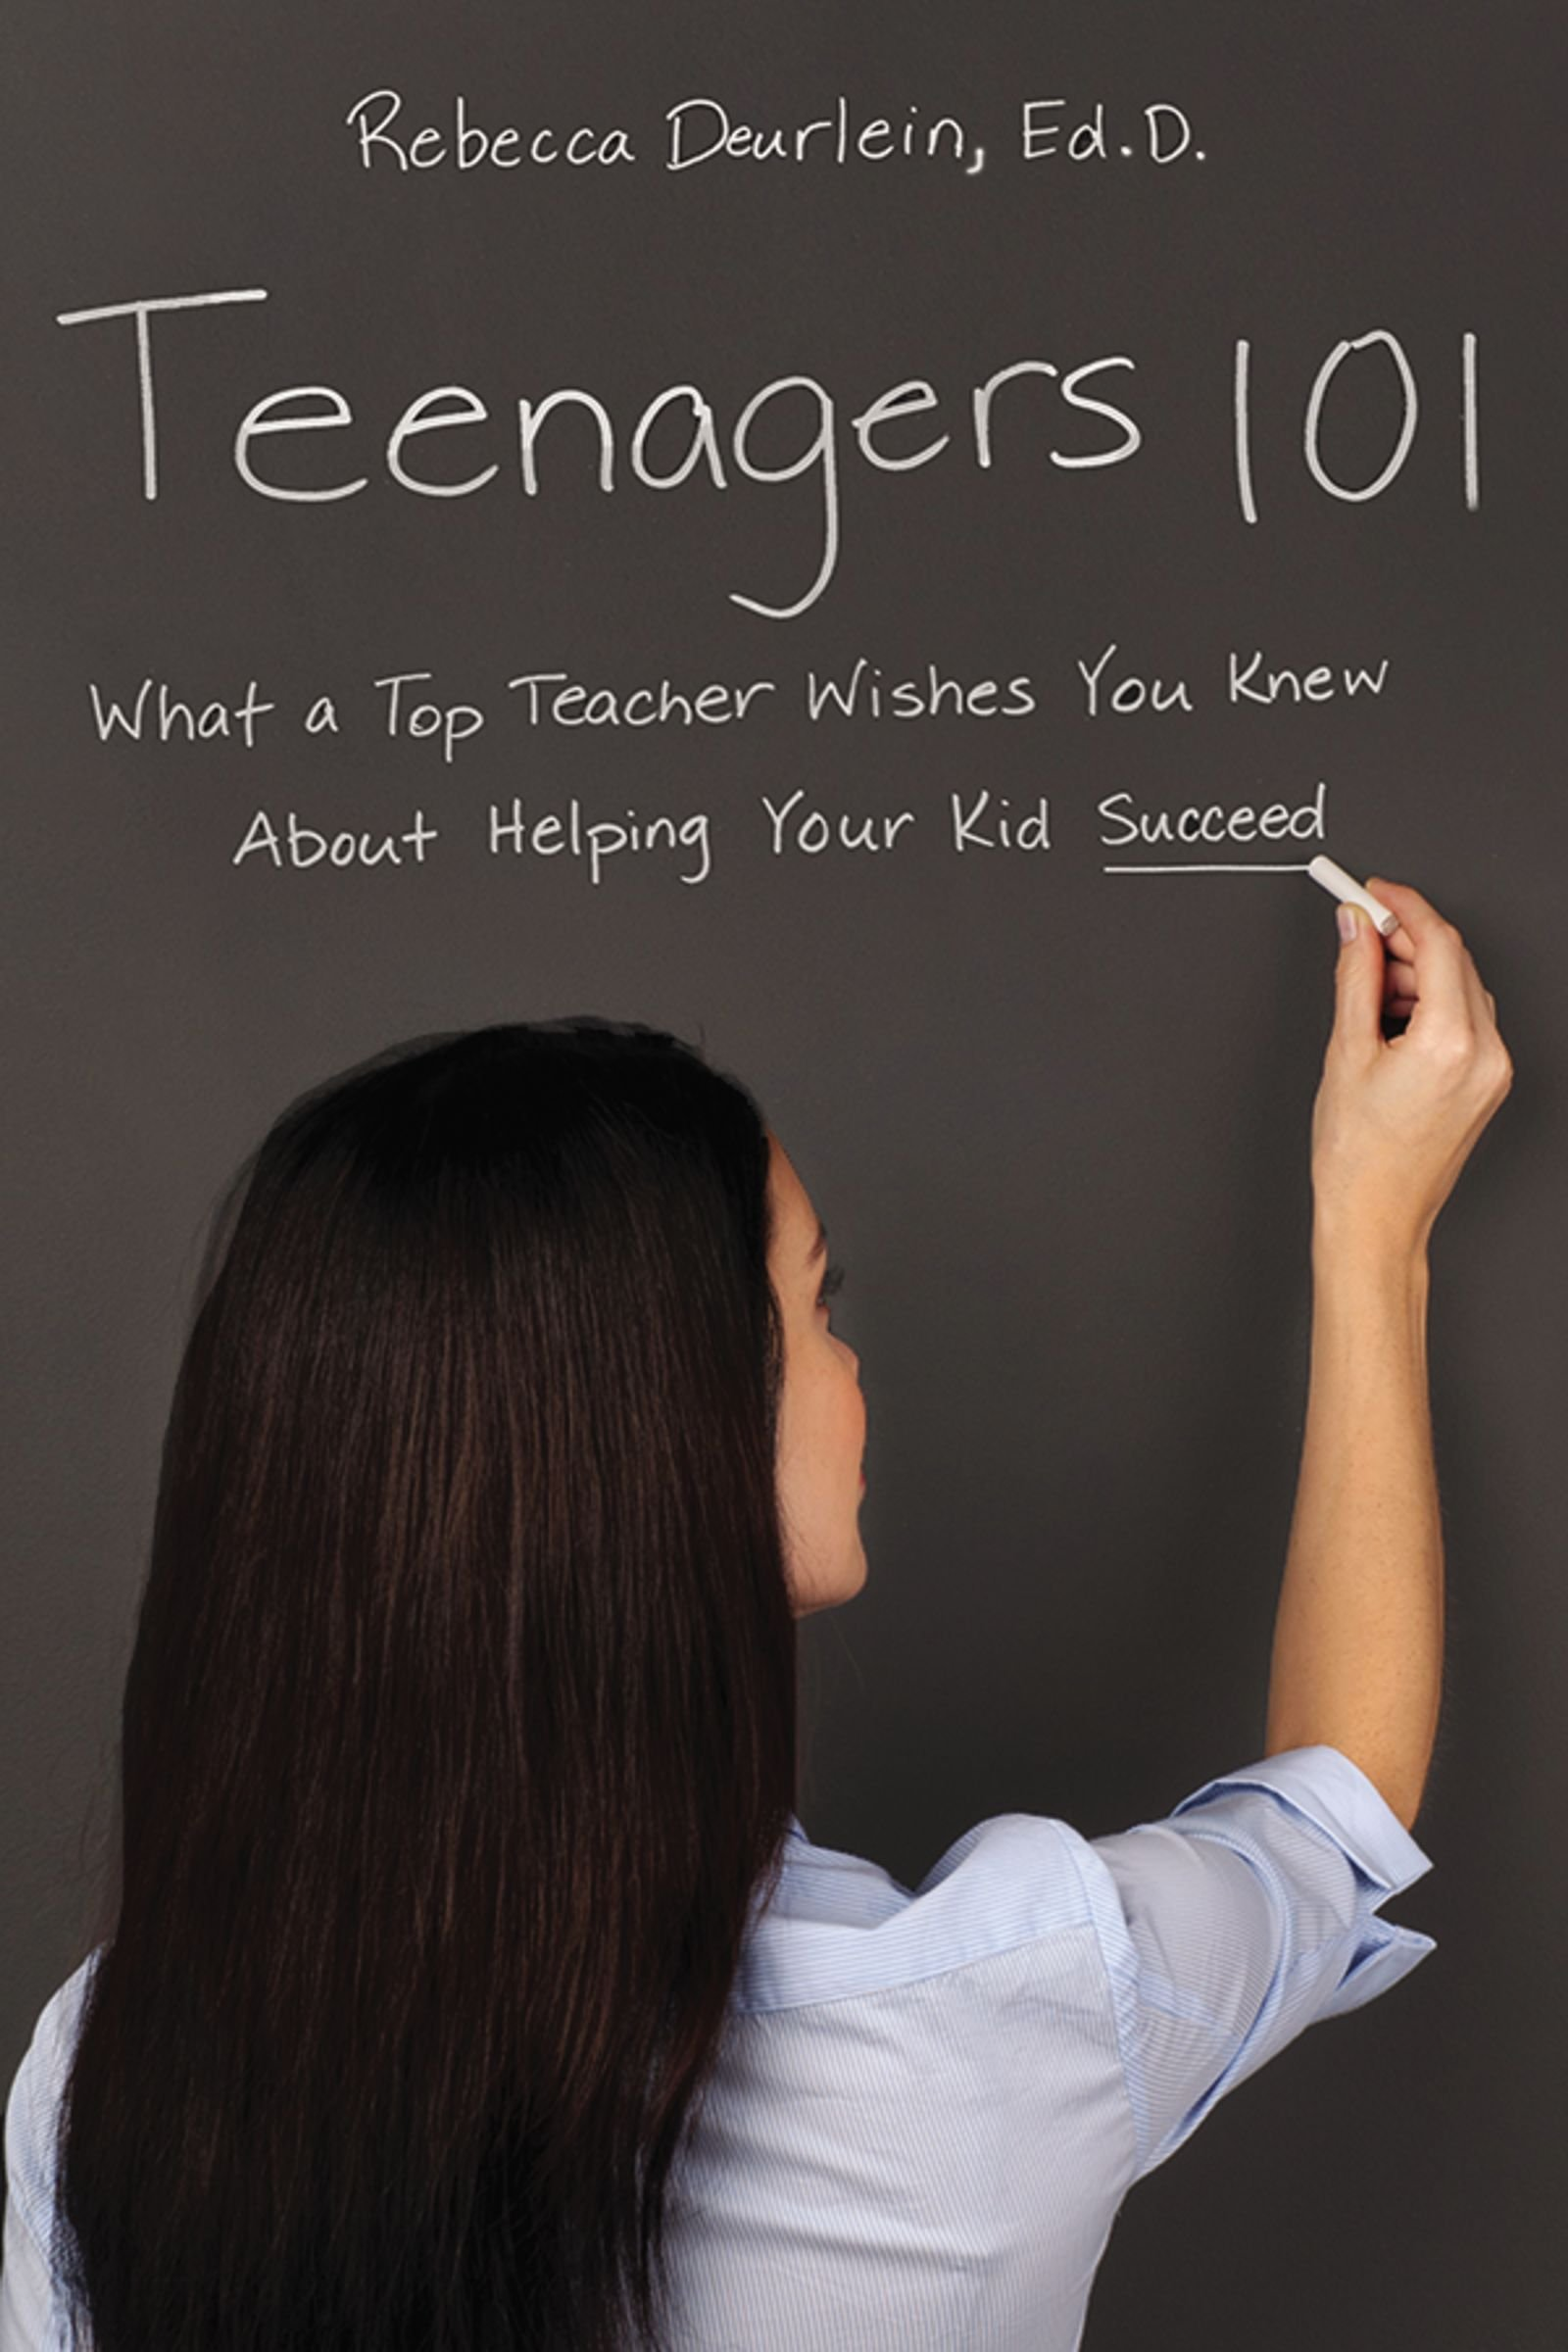 Why Teenagers Cut And How To Help >> Teenagers 101 What A Top Teacher Wishes You Knew About Helping Your